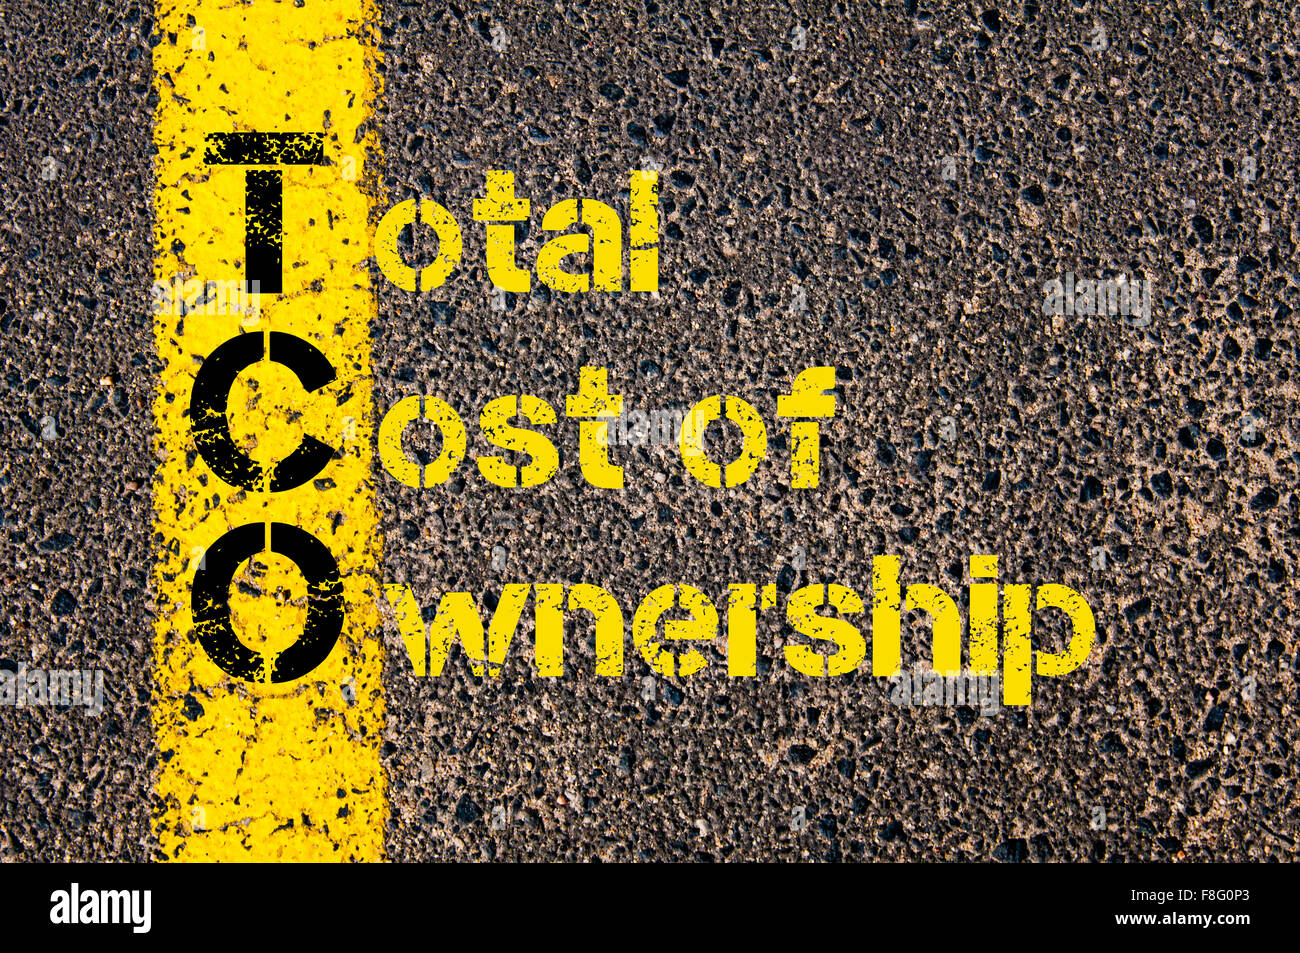 Concept image of Accounting Business Acronym TCO Total Cost of Ownership written over road marking yellow paint - Stock Image